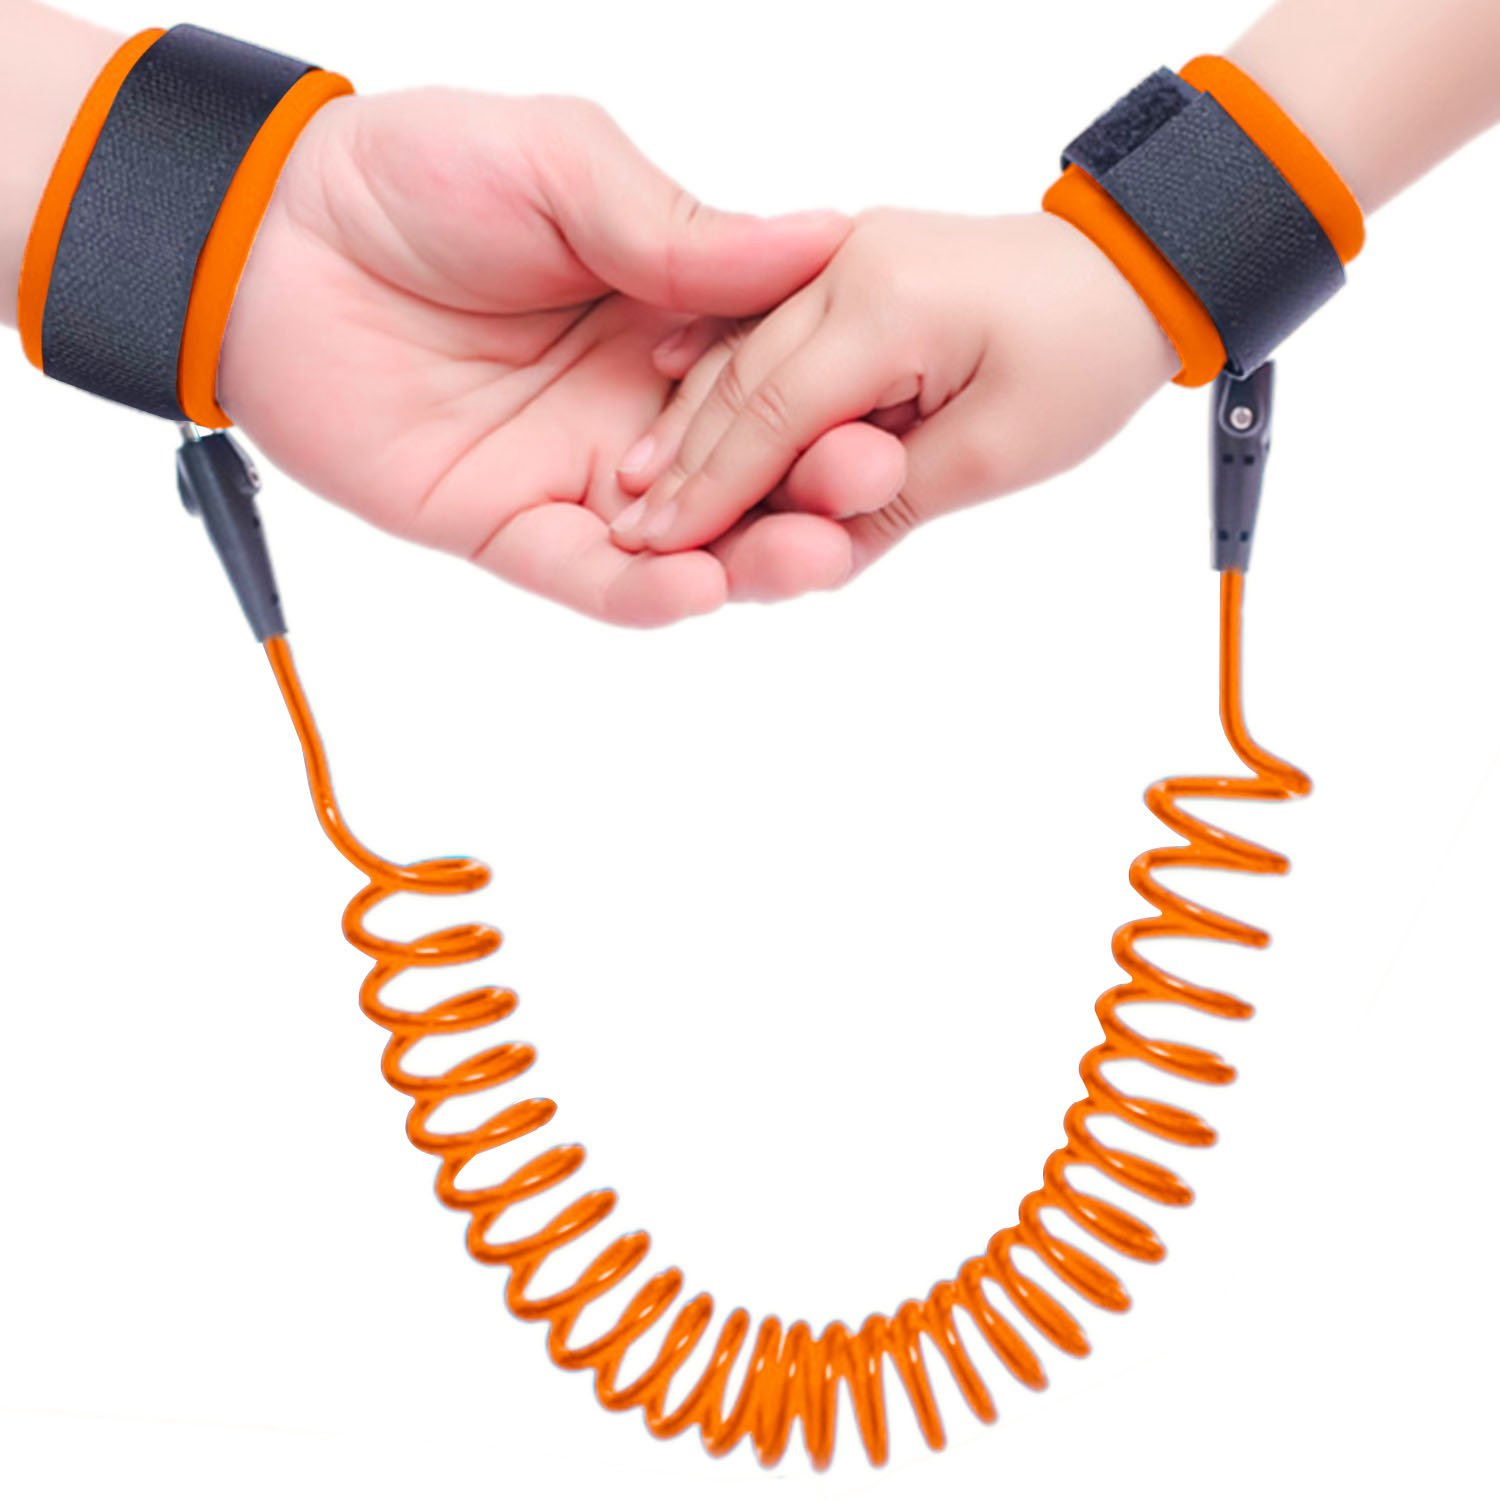 Topsky Anti Lost Wrist Link safety Velcro strap Leash Walking Hand Belt for Toddlers, Kids and Babies (1.5m ) (orange)